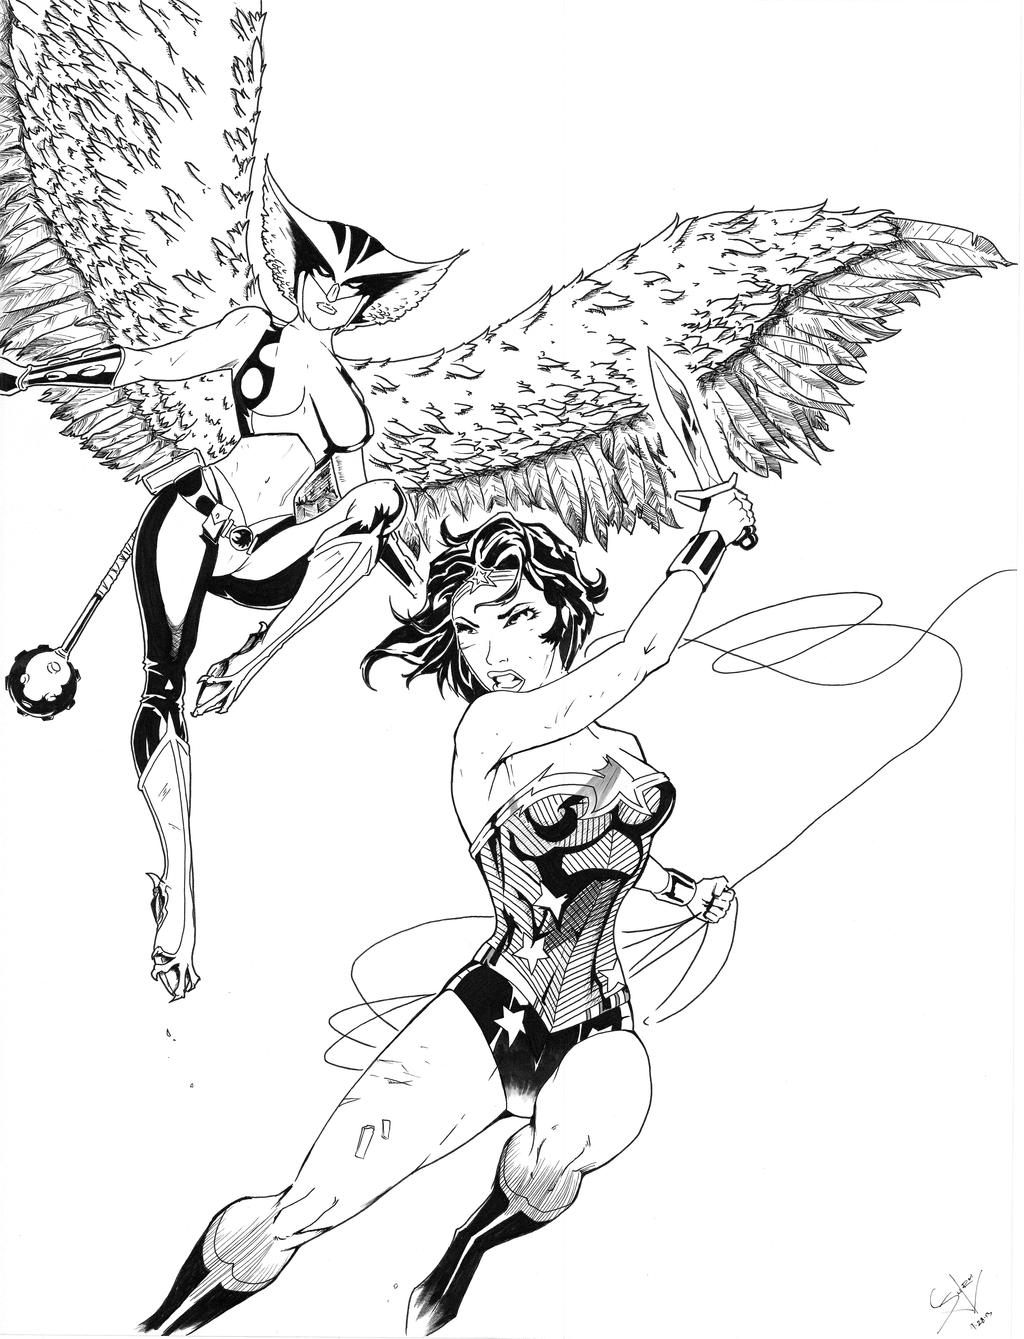 wonder woman and hawkgirl by furuarrow on deviantart